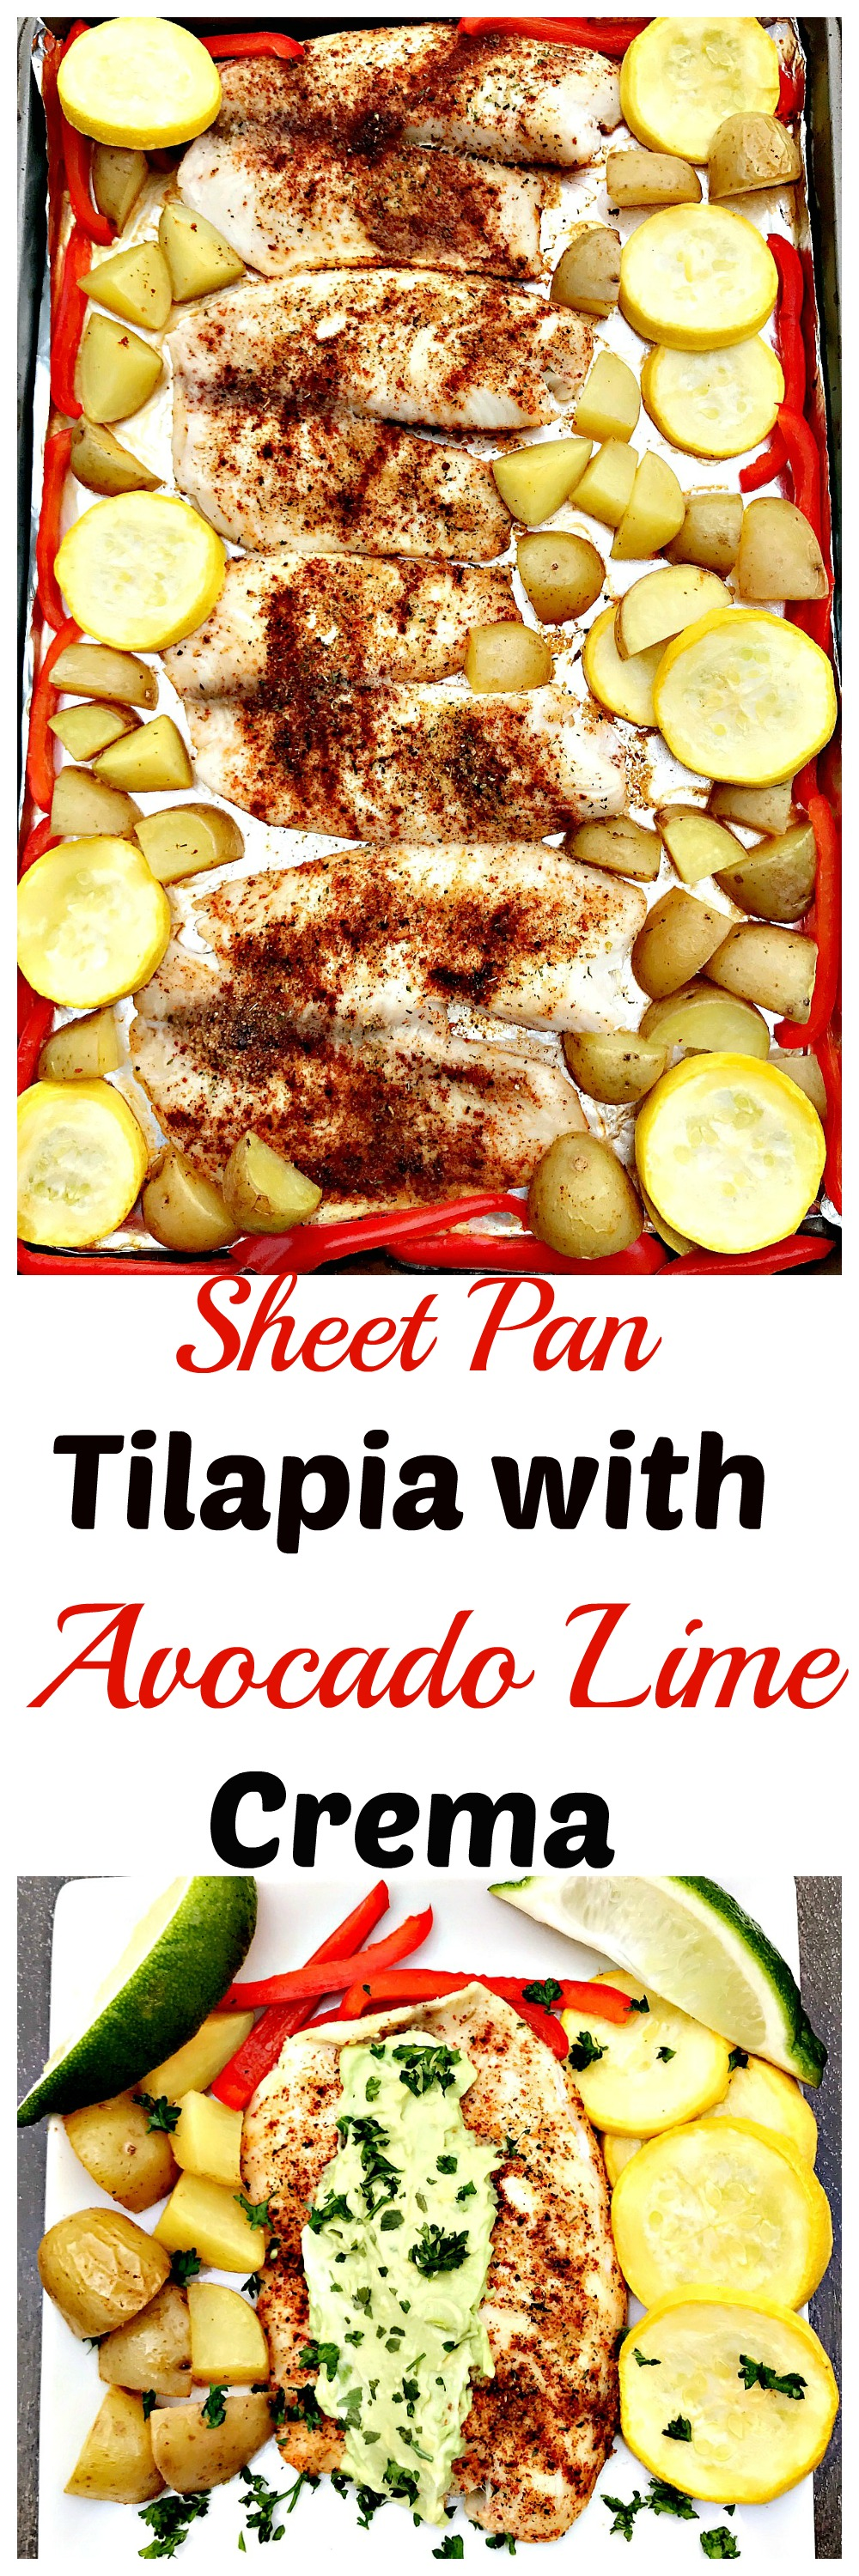 Quick and easy one sheet pan tilapia avocado lime crema. Healthy dish.